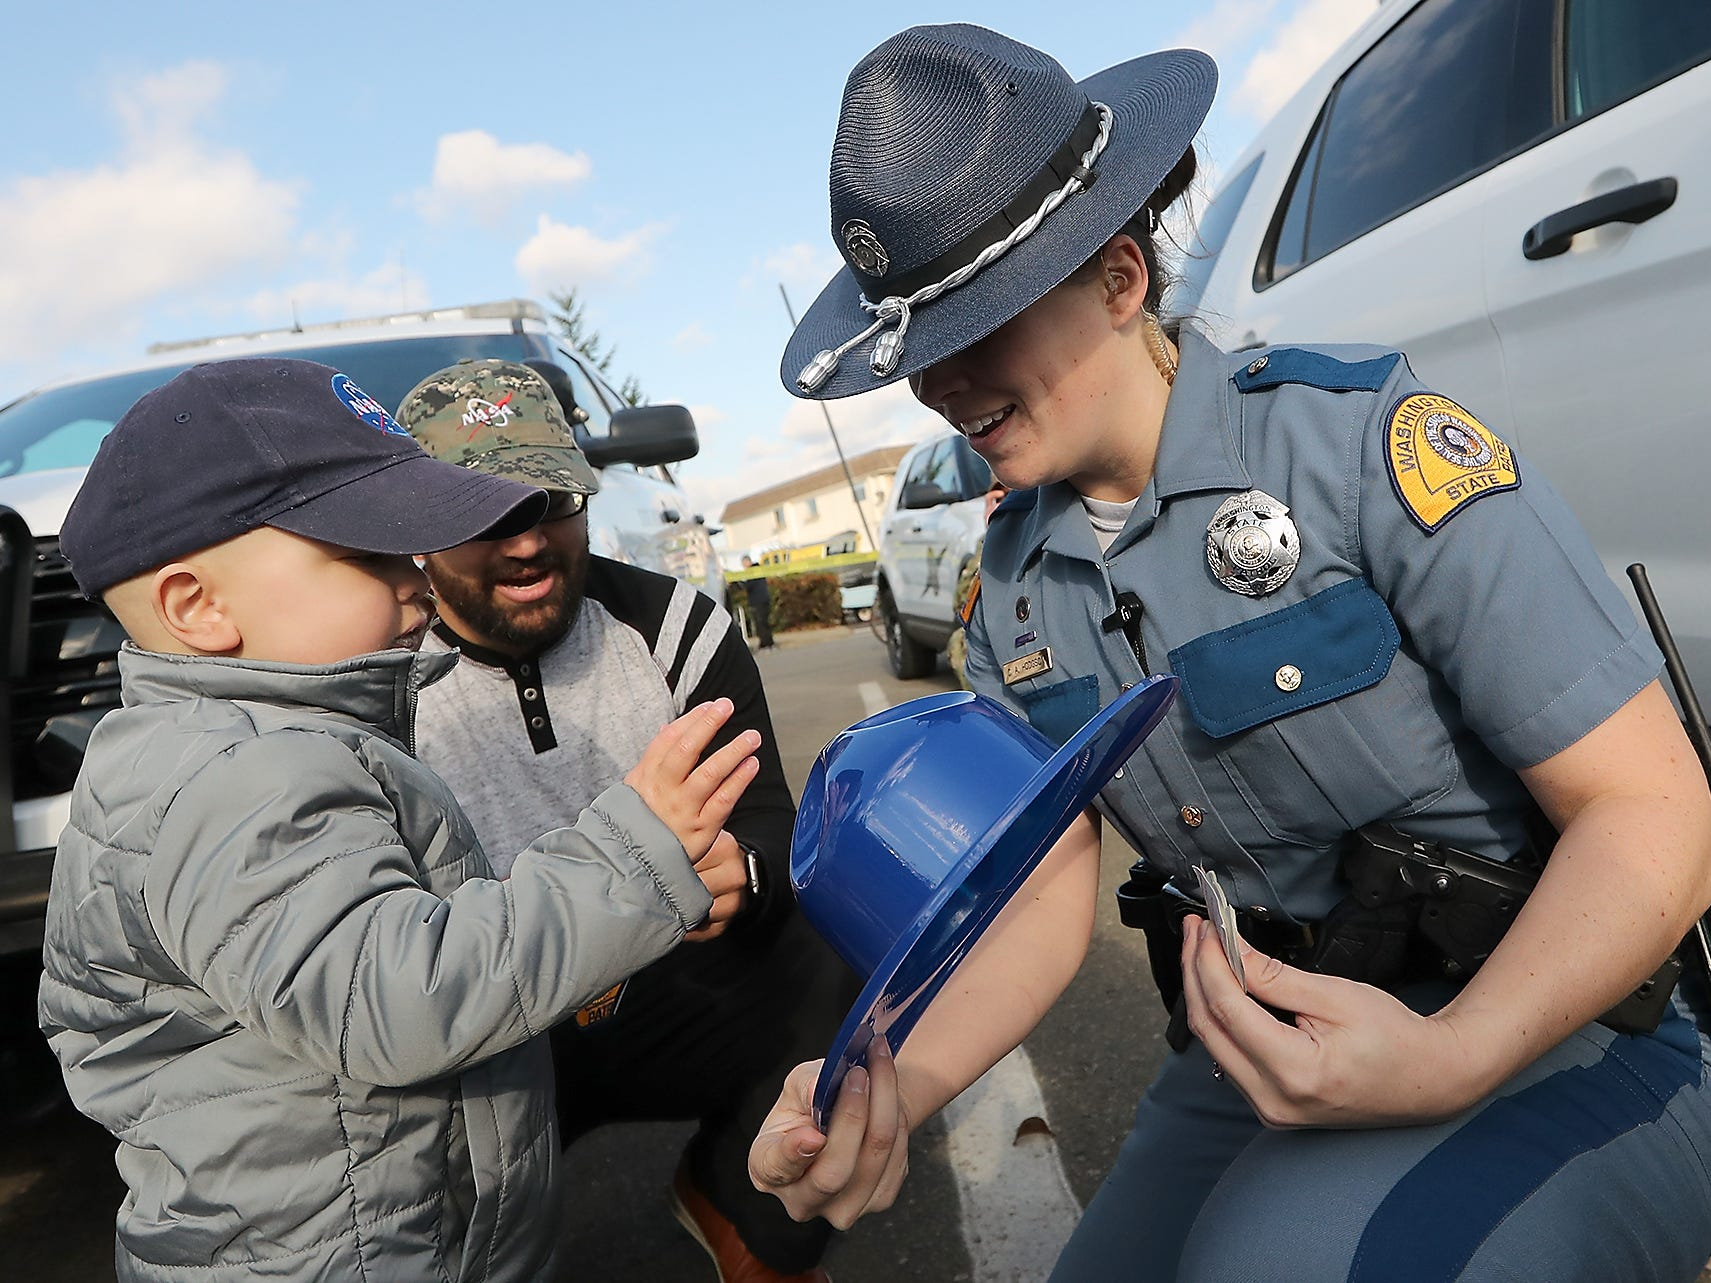 Trooper Chelsea Hodgson presents Jedi Minters, 3, with a Washington State Trooper hat and badge stickers during the Jedi's Special Day event at the Port of Bremerton boat launch across from Port Orchard's City Hall on Wednesday, November 7, 2018.